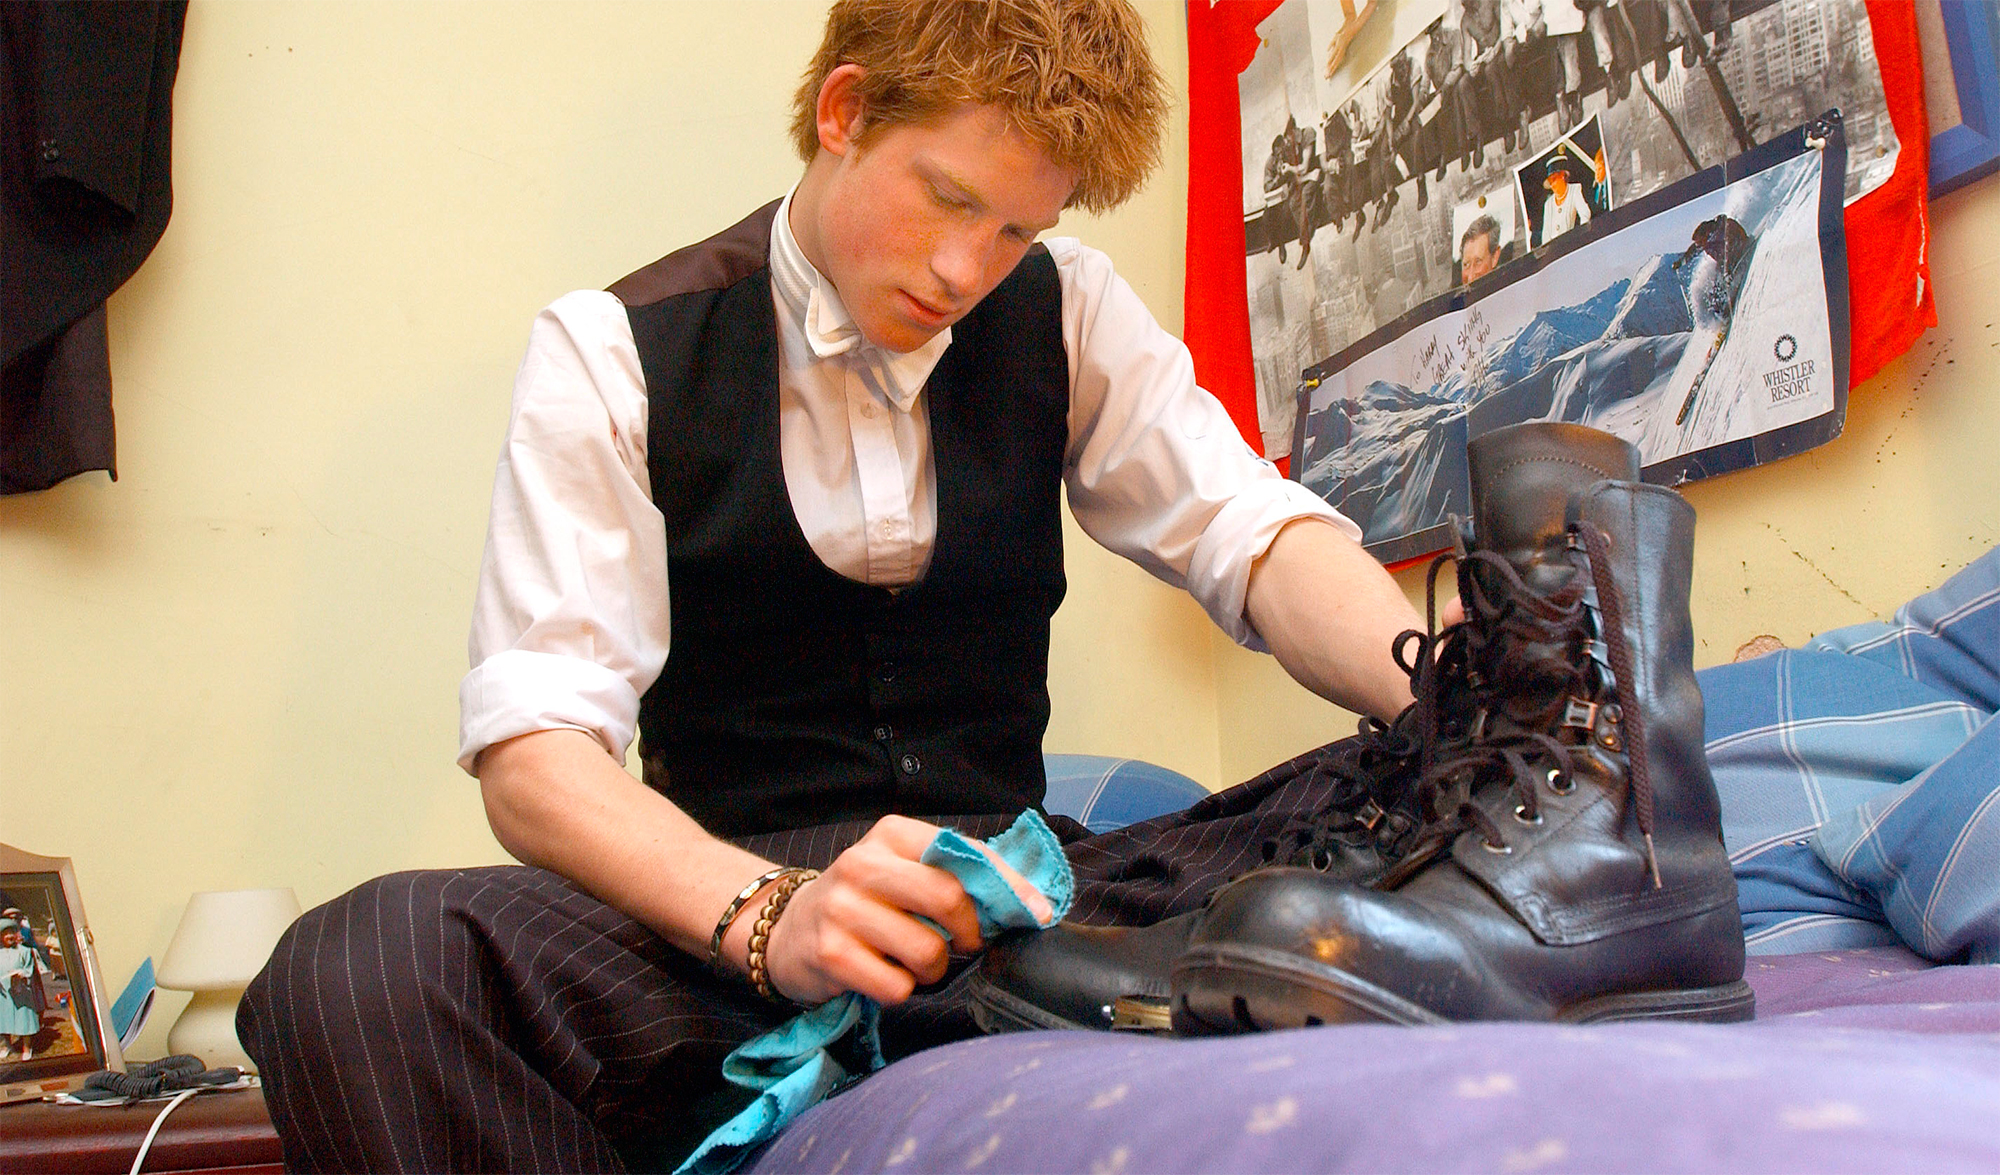 Prince Harry Polishes Boots